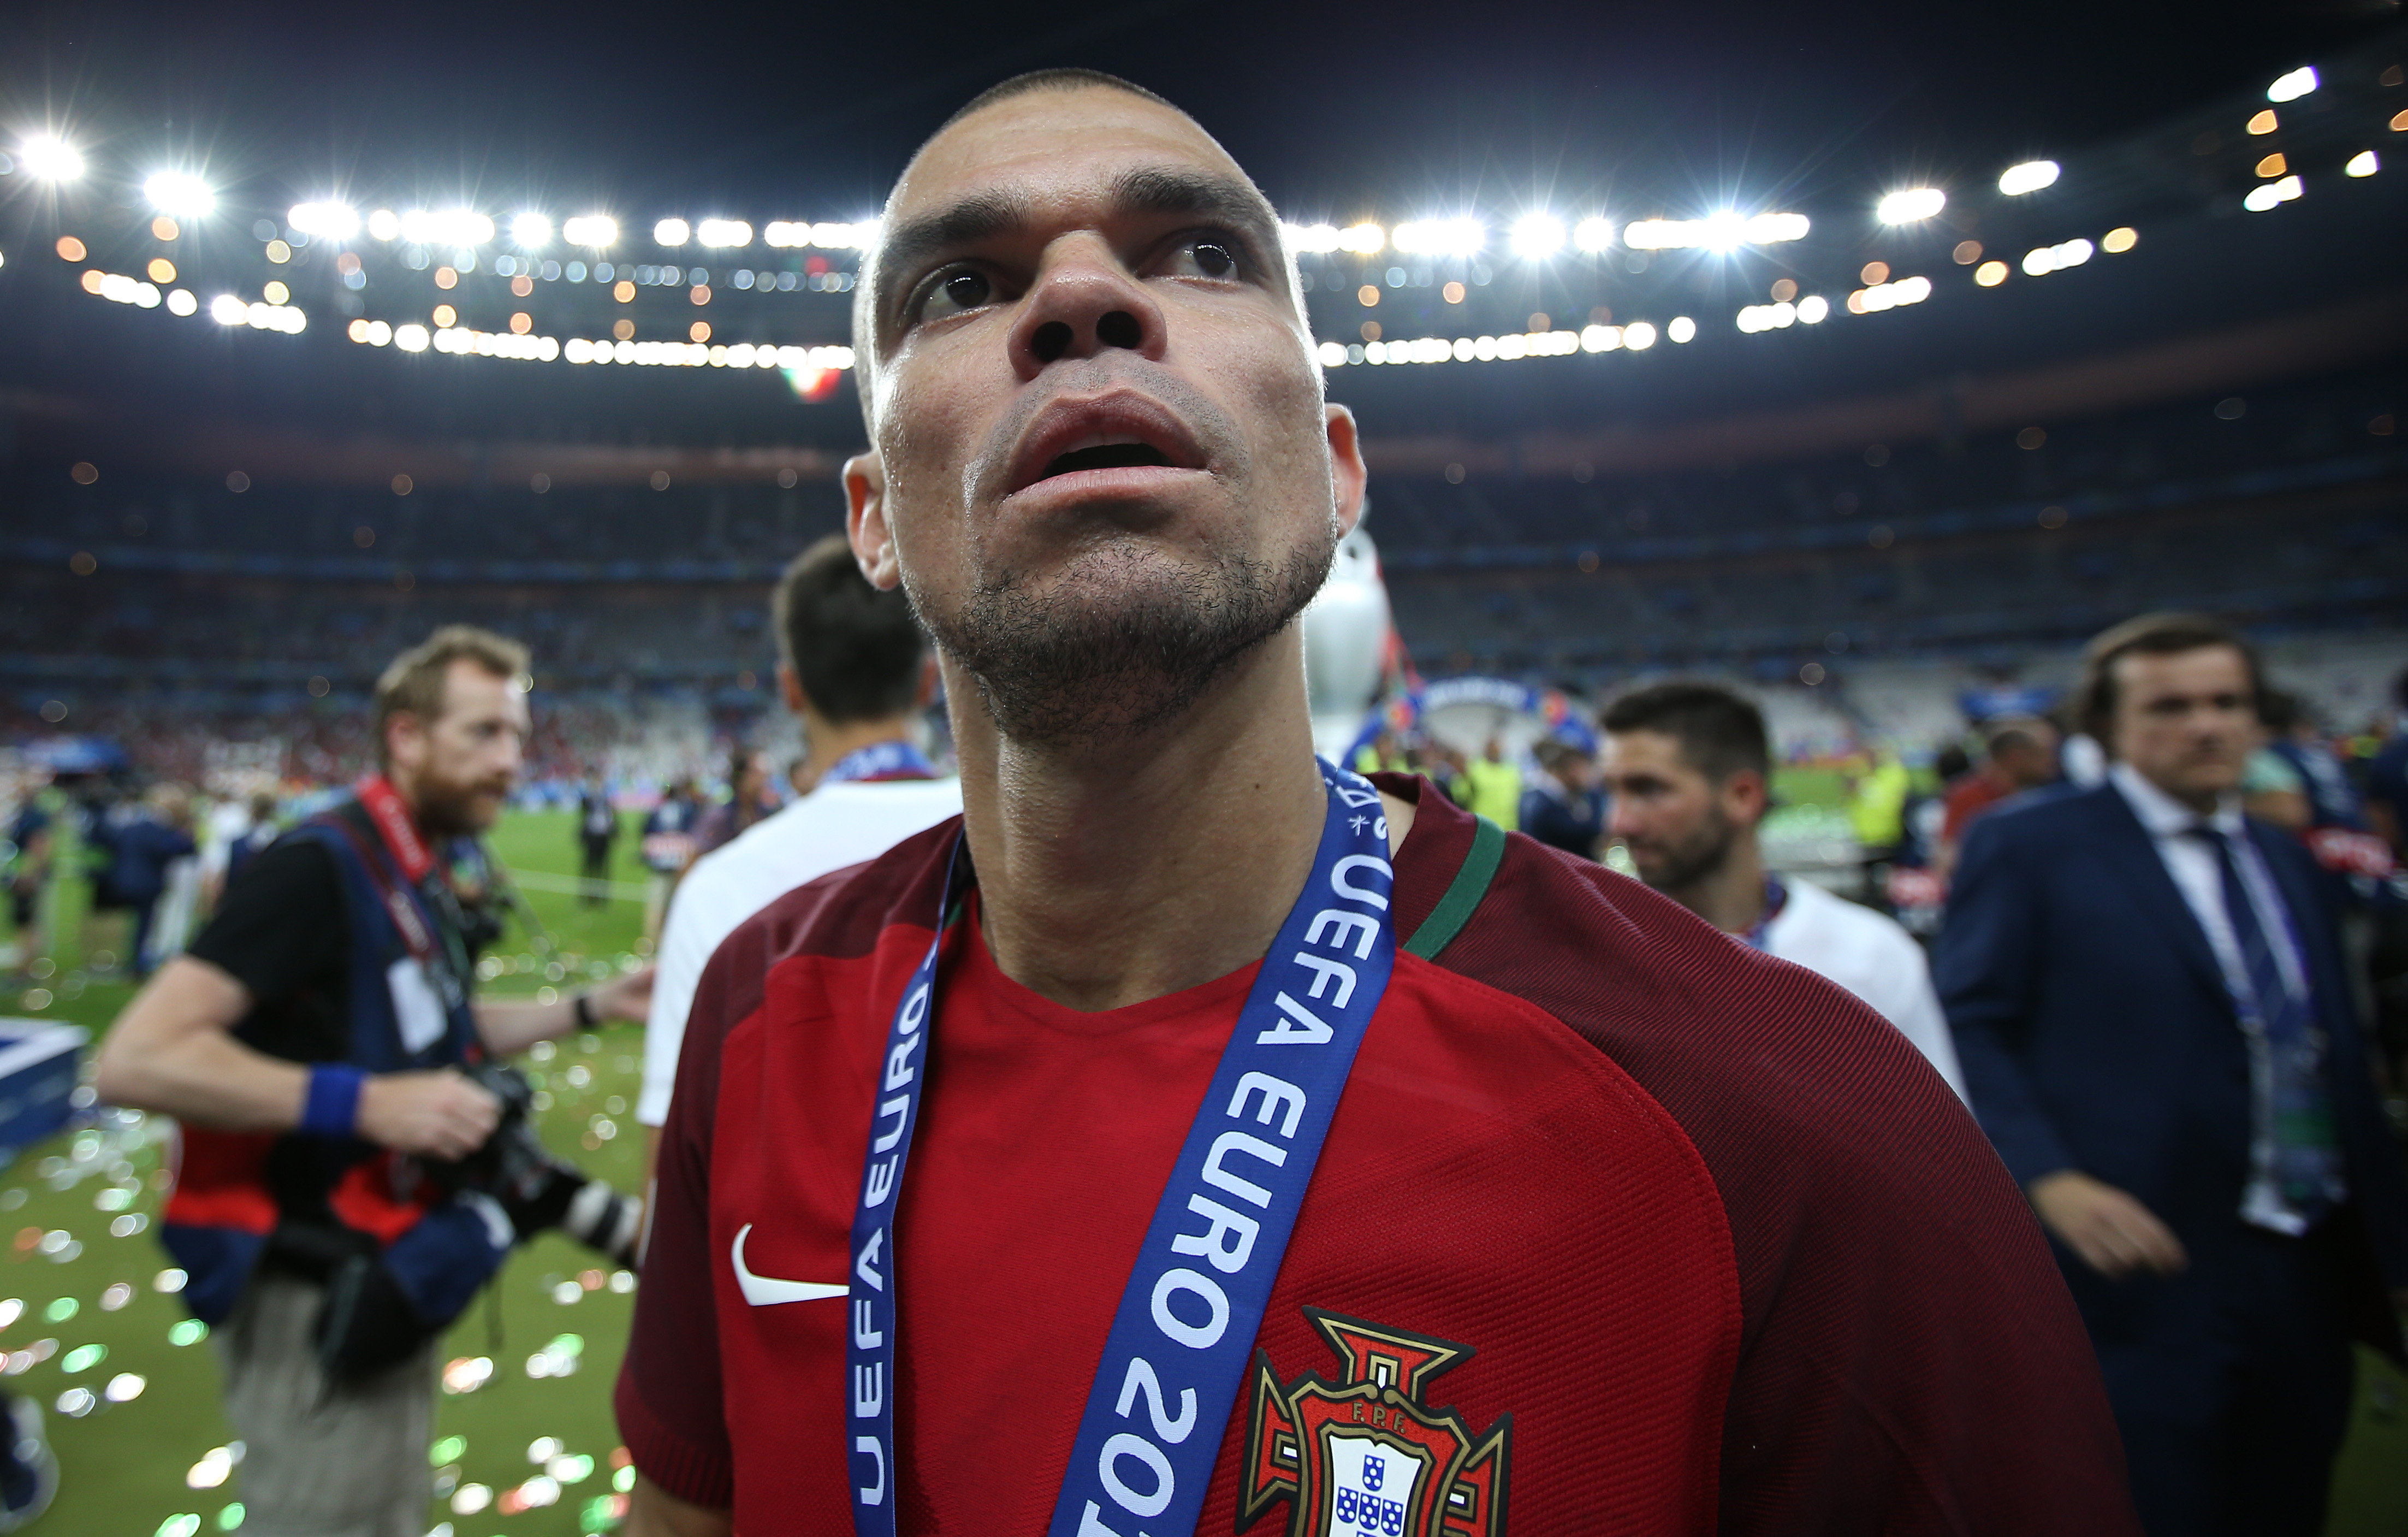 Pepe sick on pitch during Euro 2016 celebrations with Portugal